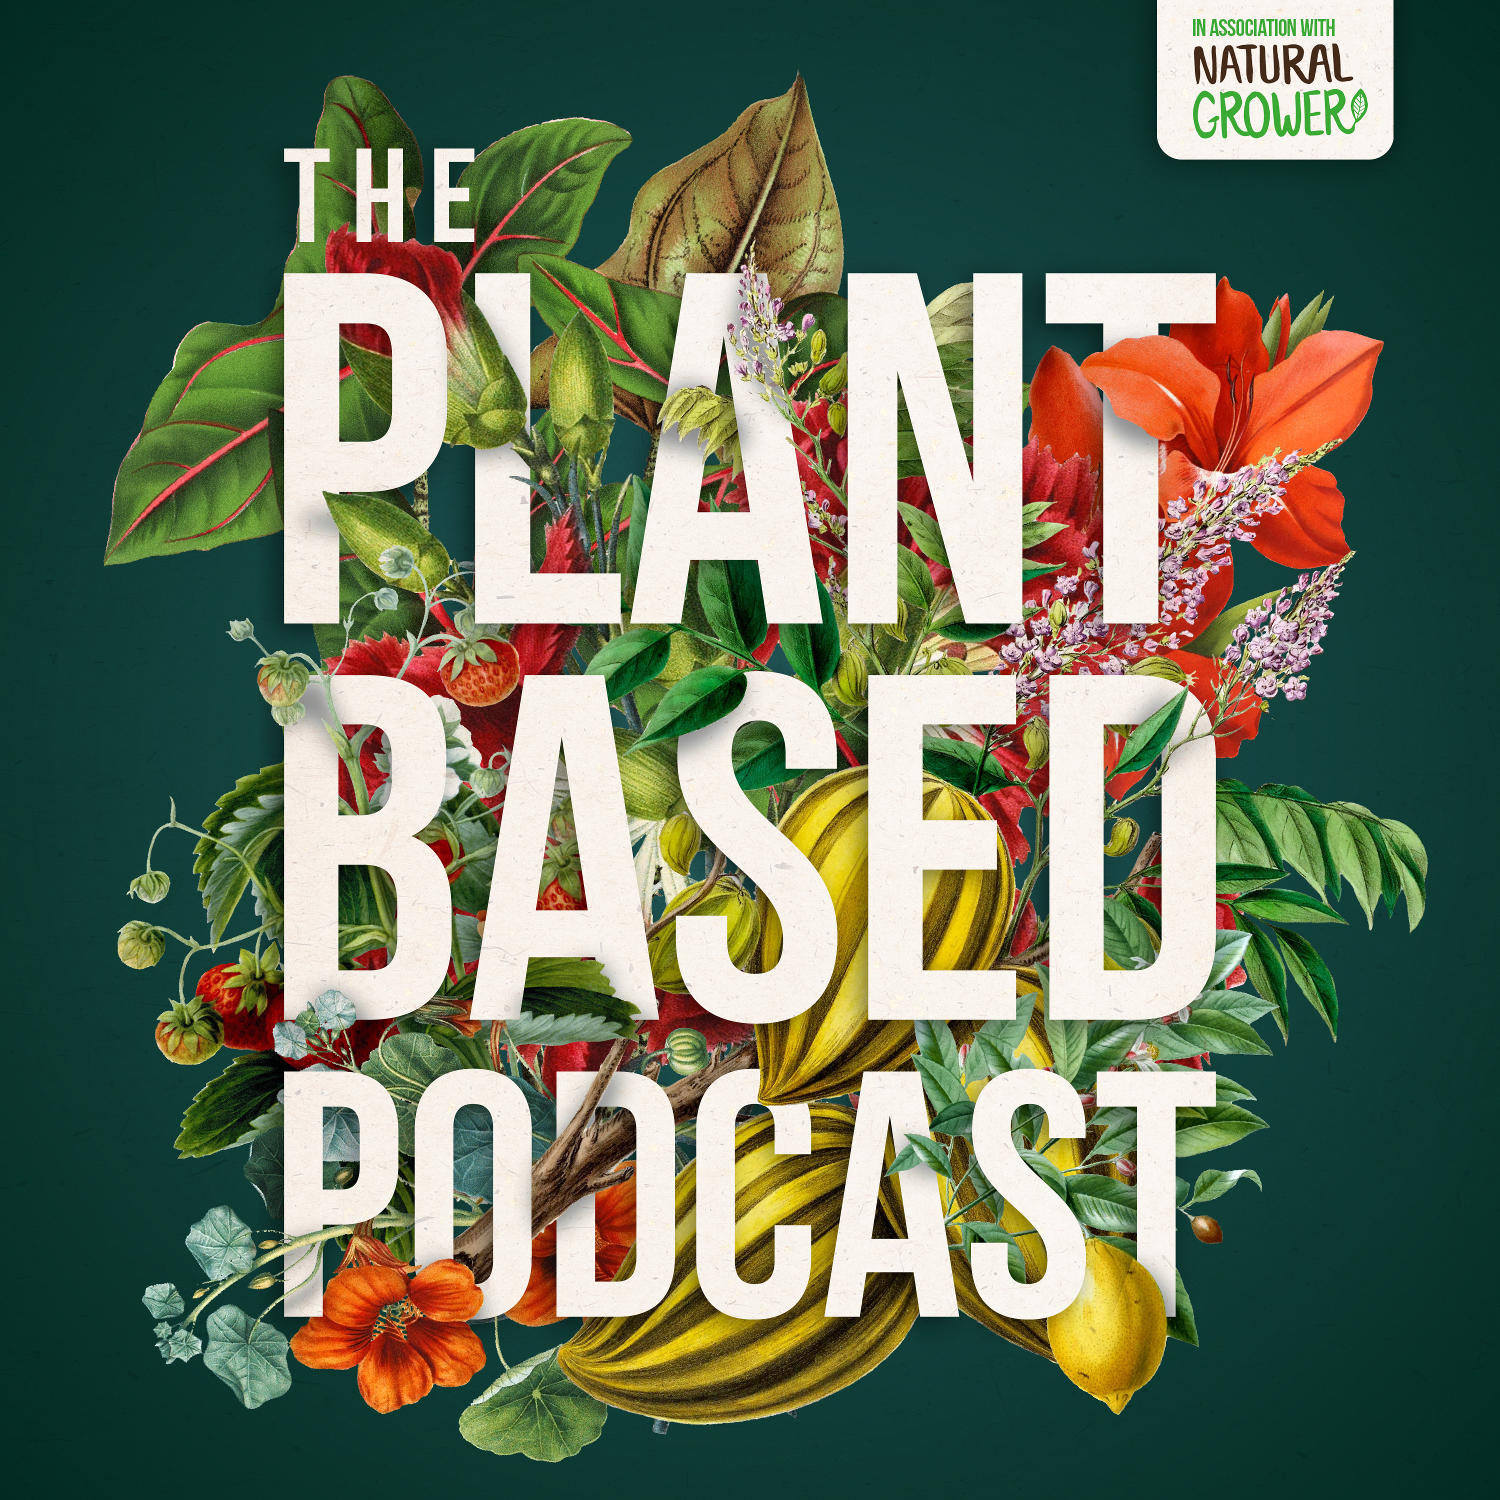 The Plant Based Podcast S3 Episode Eleven - Getting kids into gardening